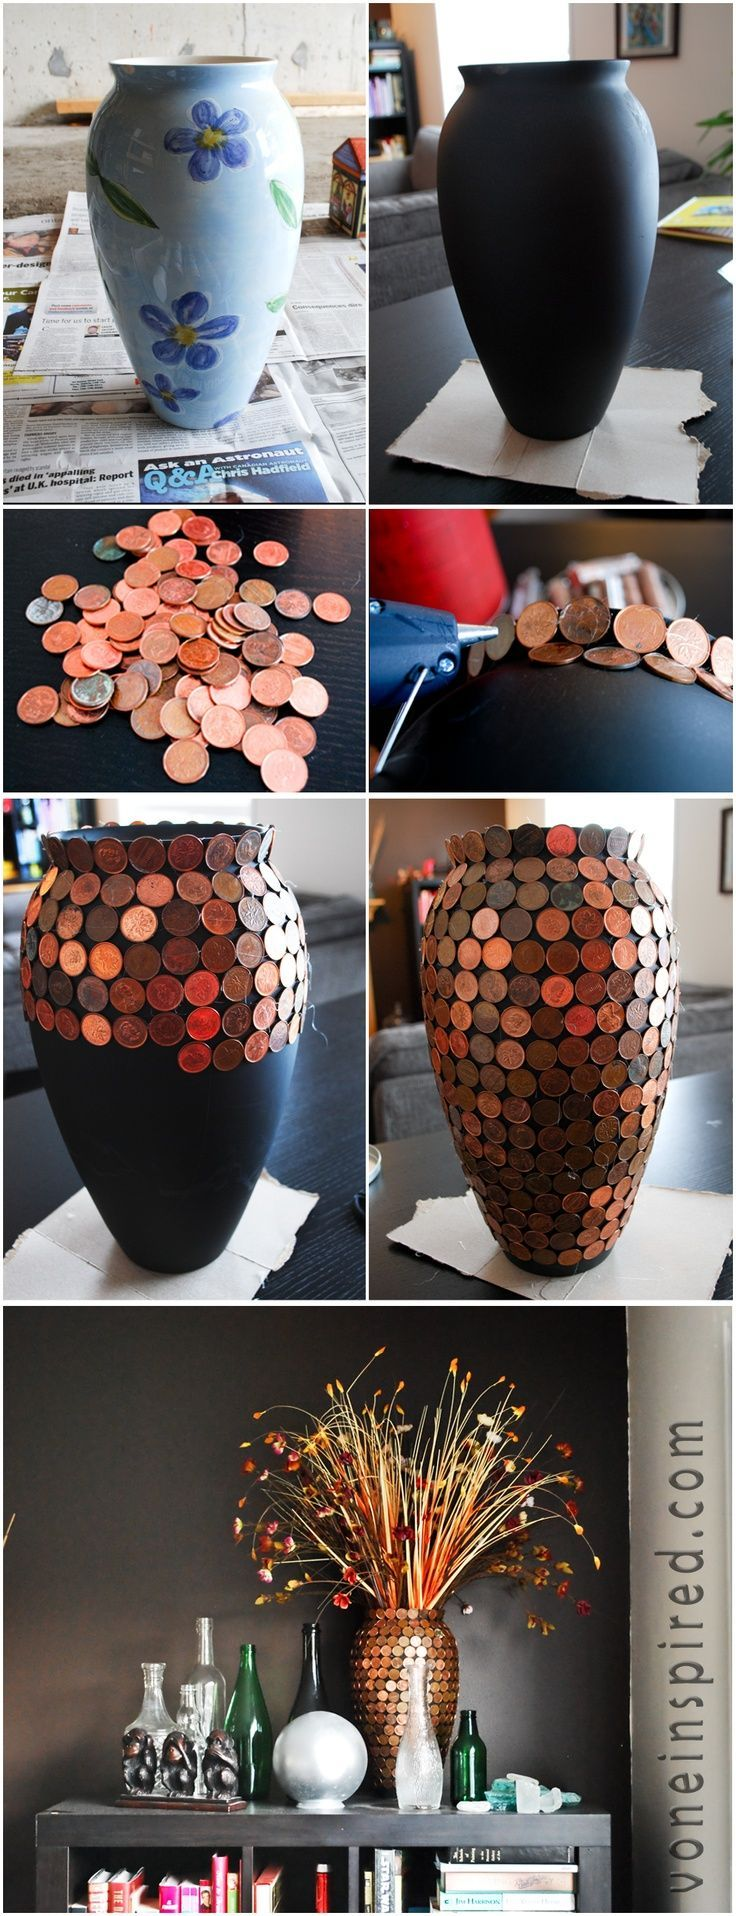 I wonder what this would look like with nickels or dimes